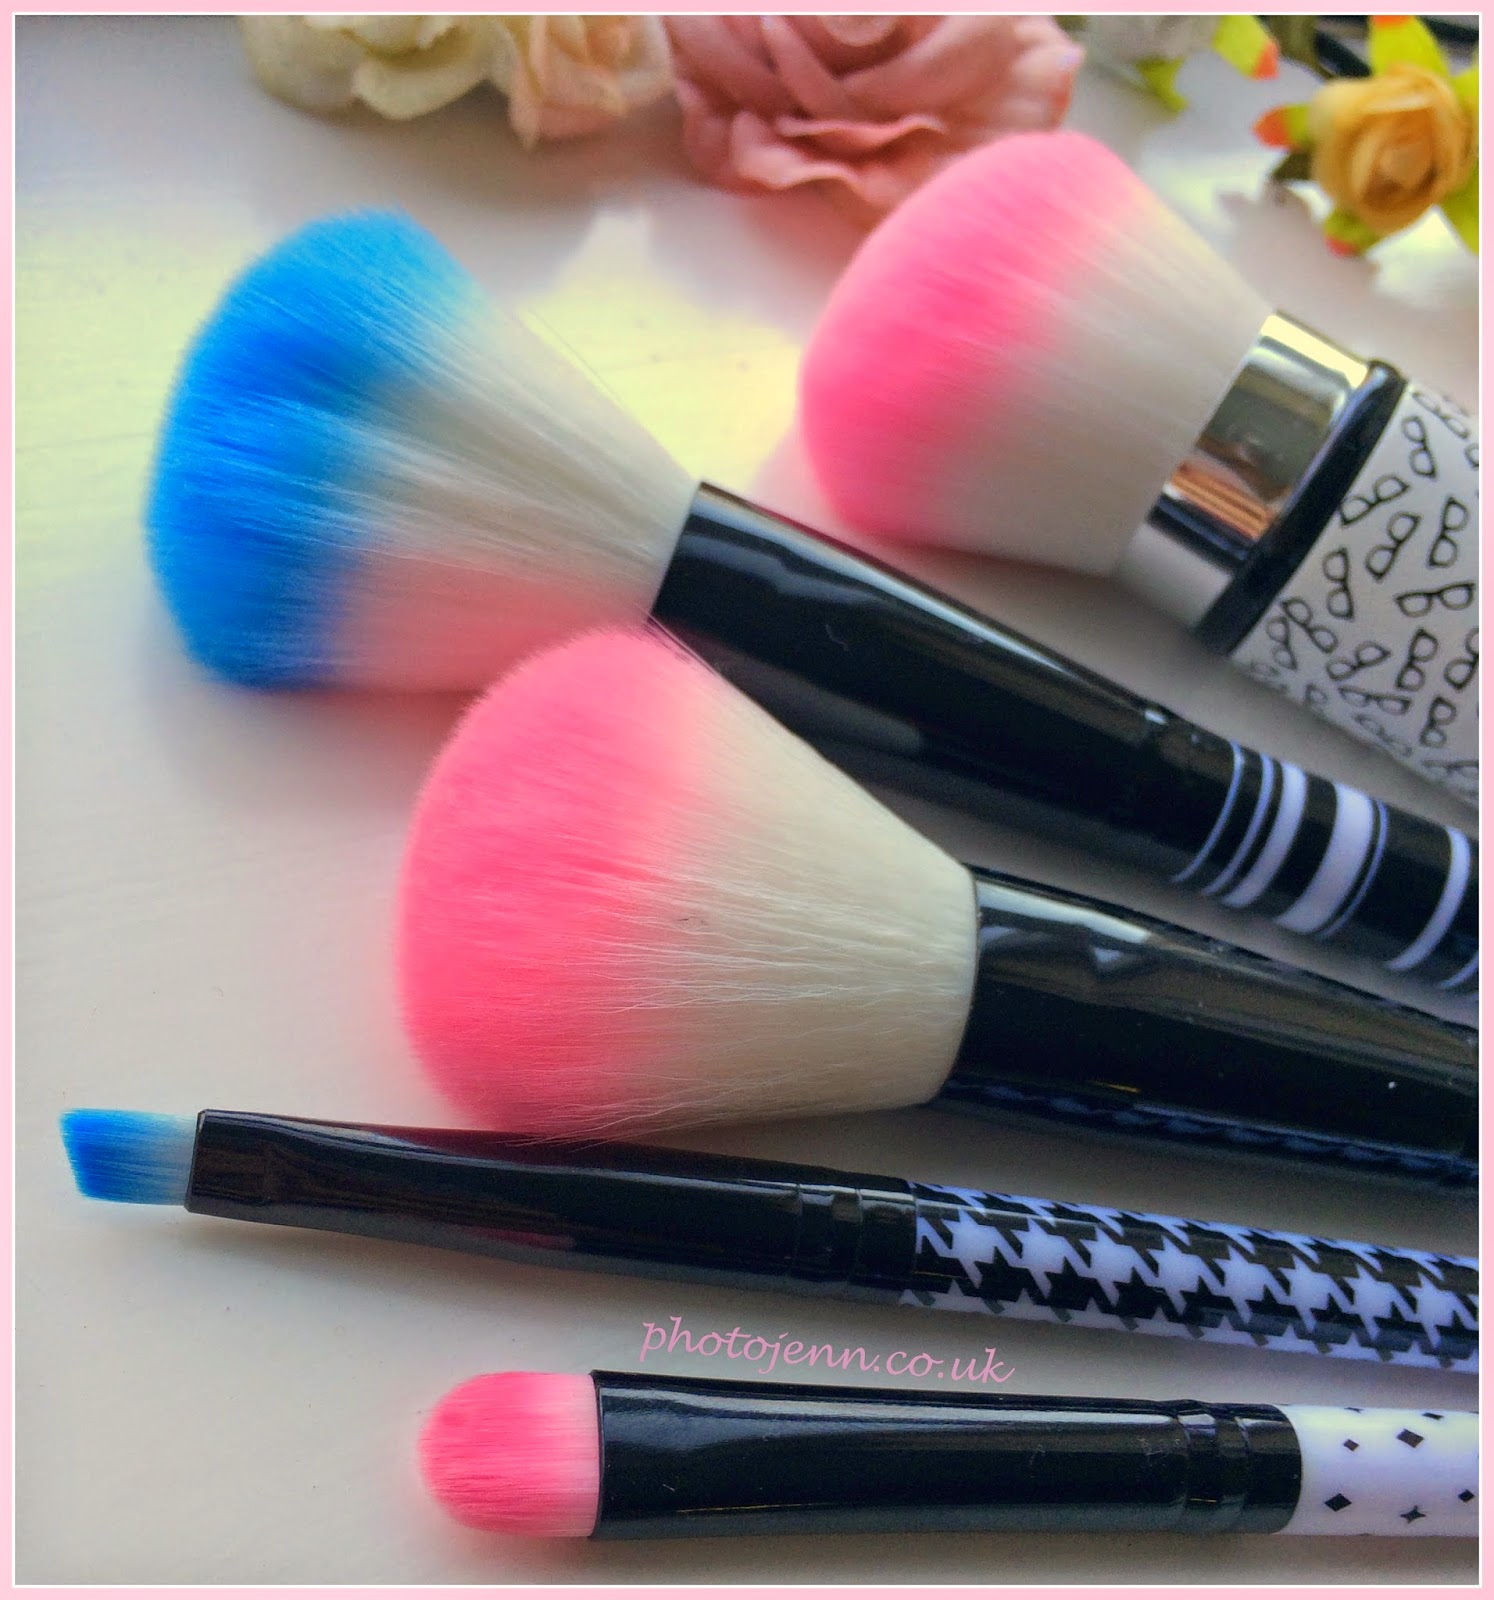 blue-pink-make-ip-brush-wilko